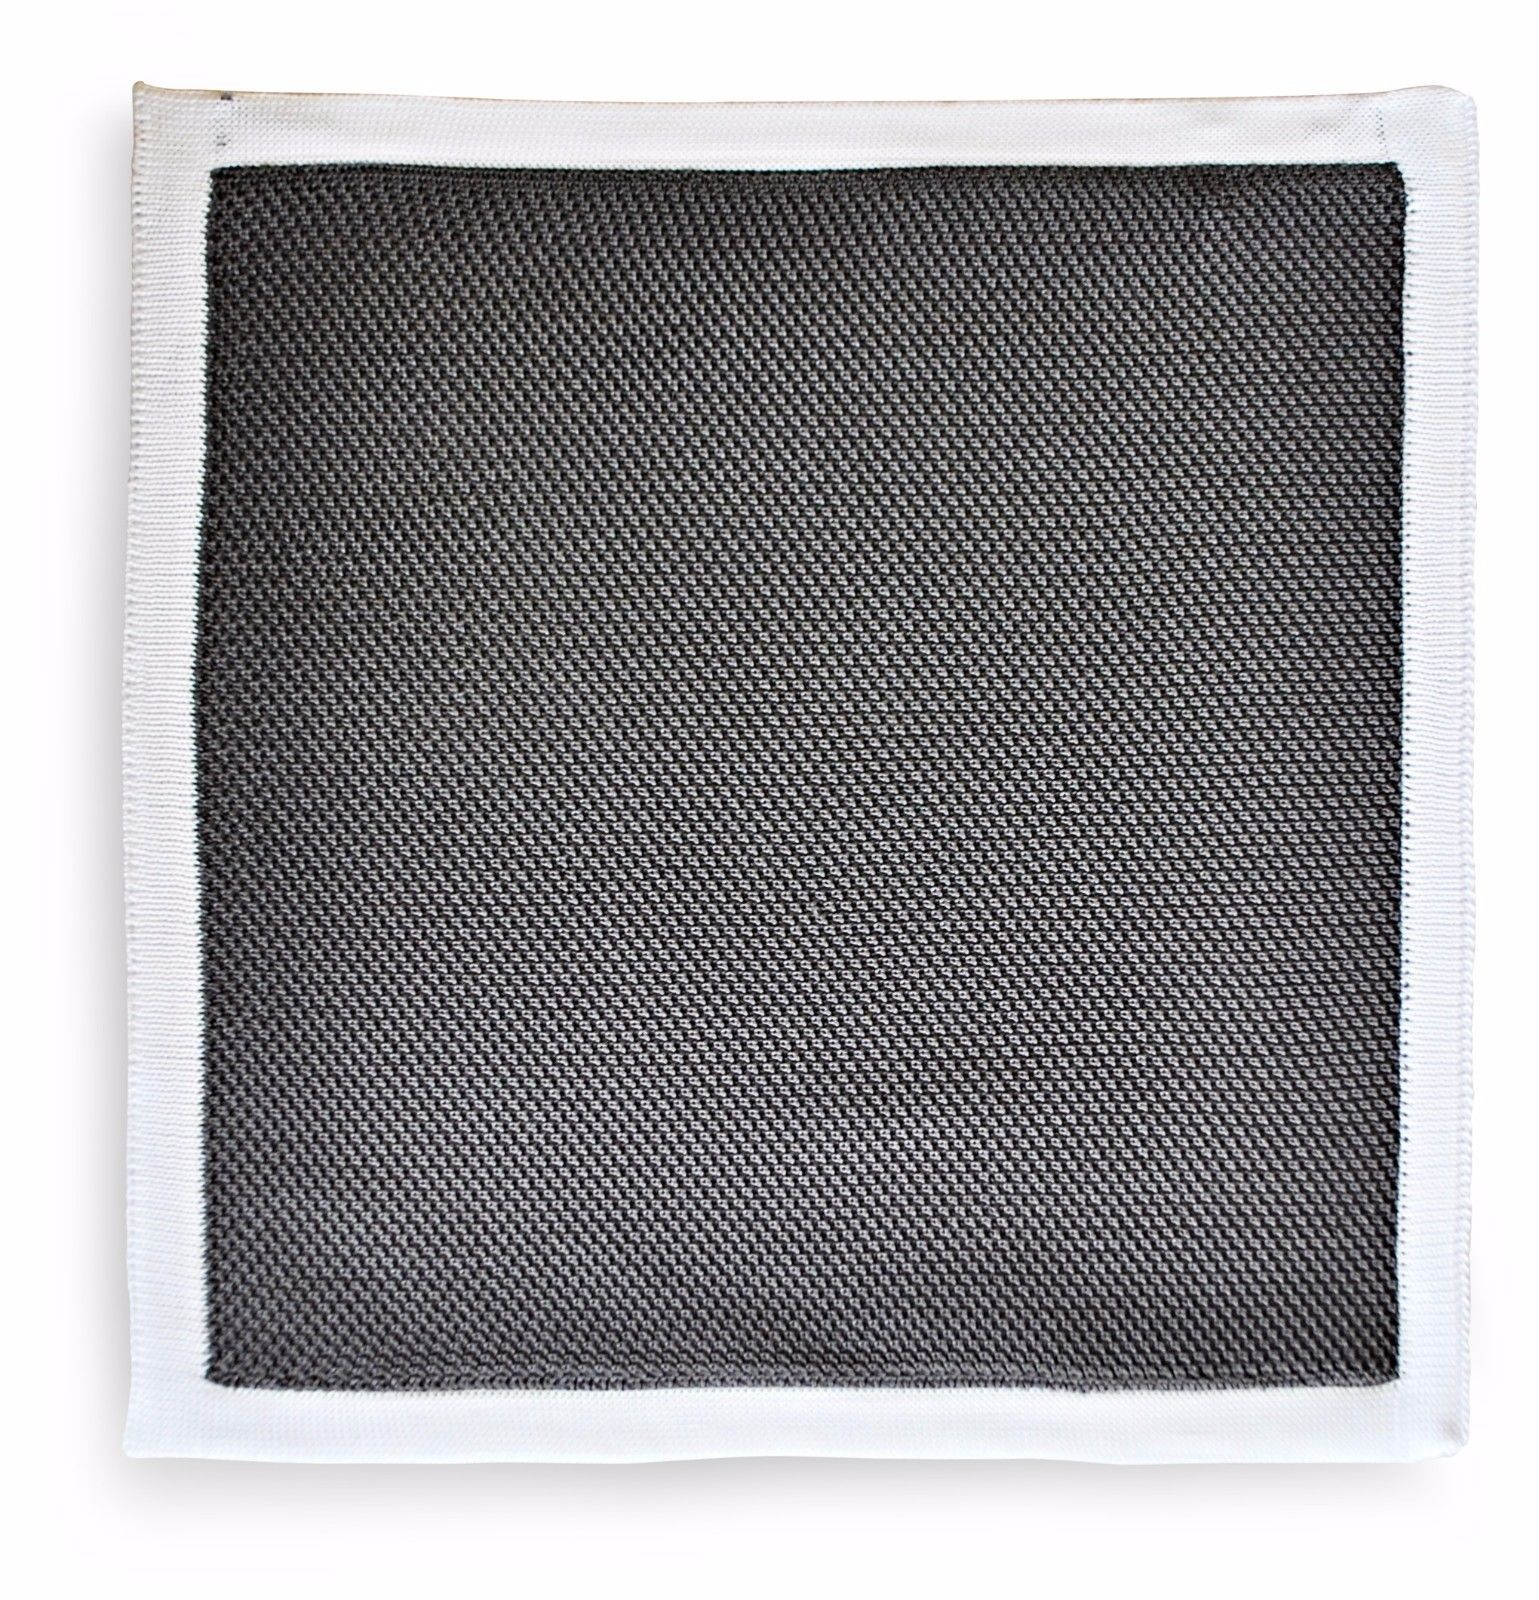 Frederick Thomas knitted pocket square handkerchief in dark grey FT3178